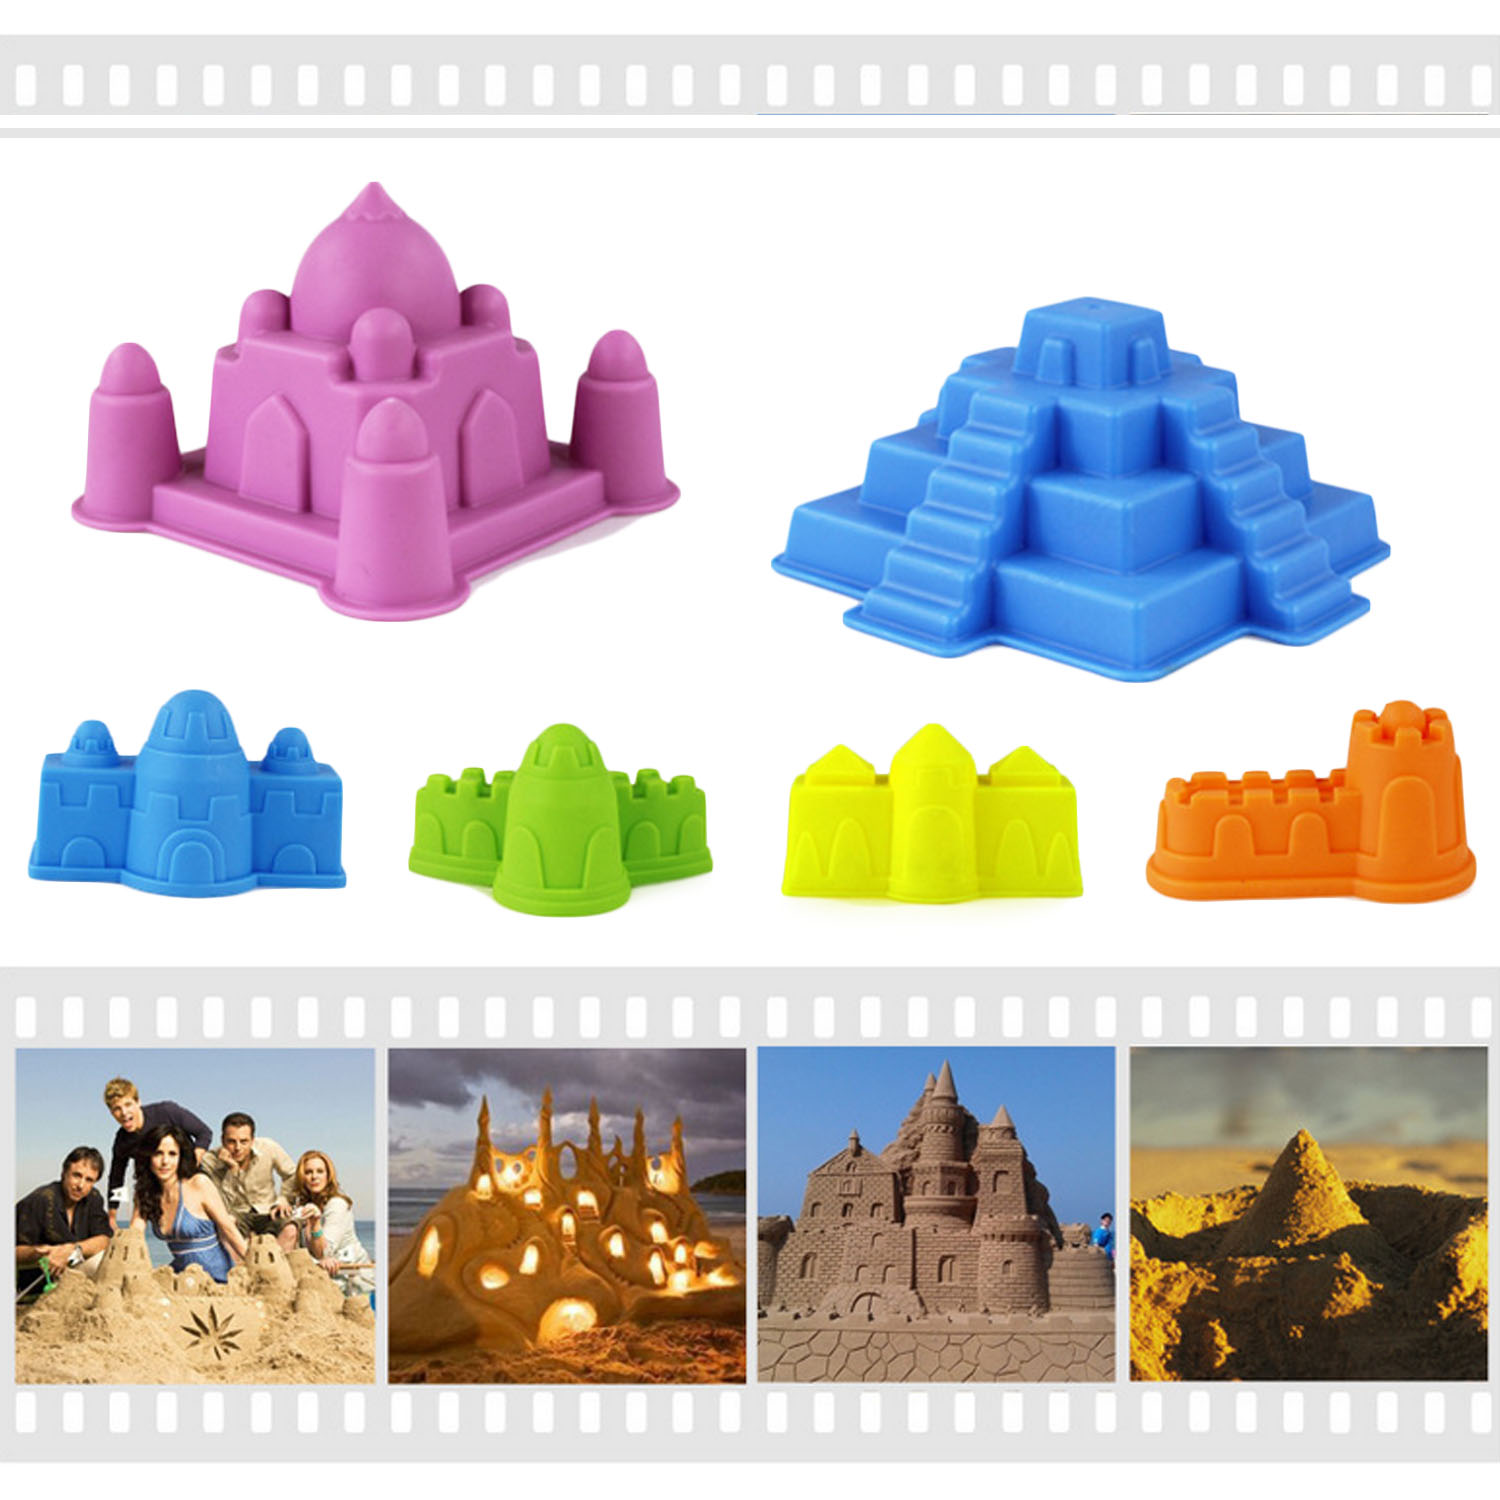 Besegad 6pcs Funny Kids Beach Sand Game Toys Set Castle Model Molds Beach Tools Toys For Kids Children Outdoor Beach Playset Toy